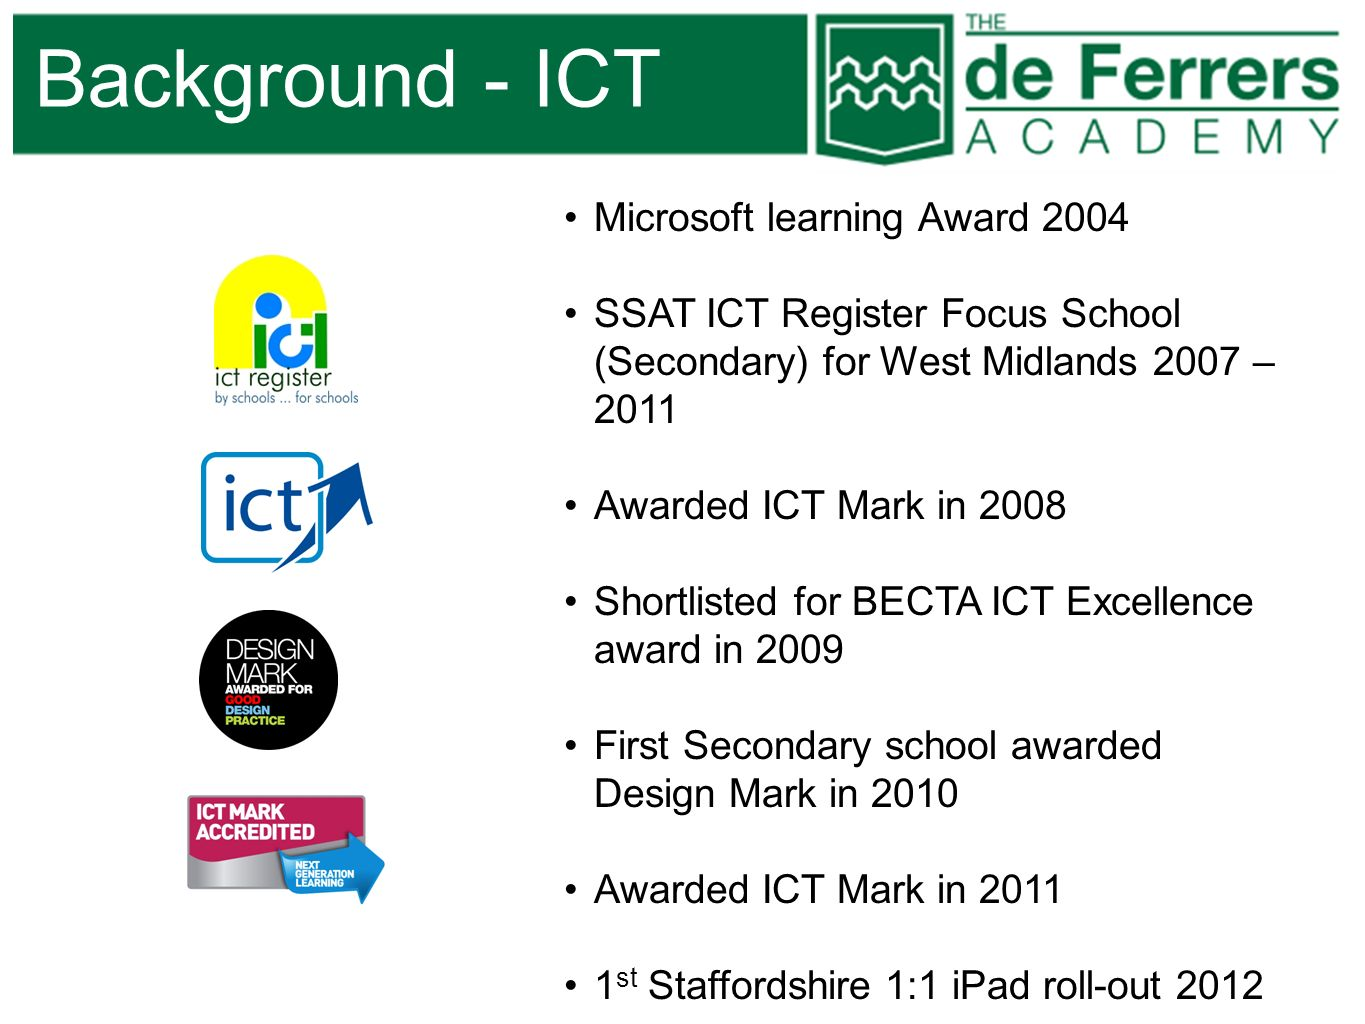 Background - ICT Microsoft learning Award 2004 SSAT ICT Register Focus School (Secondary) for West Midlands 2007 – 2011 Awarded ICT Mark in 2008 Short